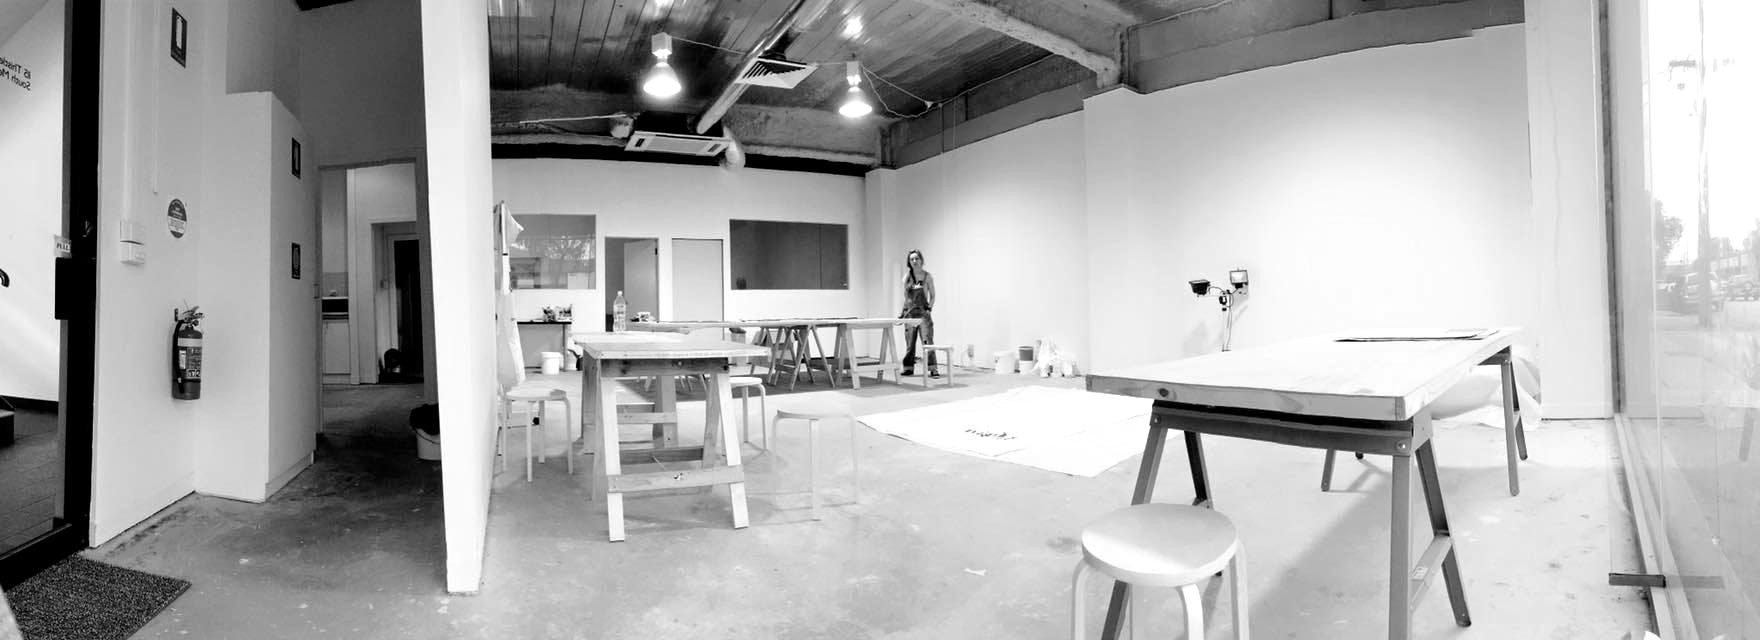 Creative studio at Laurent Contemporary Art Gallery and Cafe, image 1